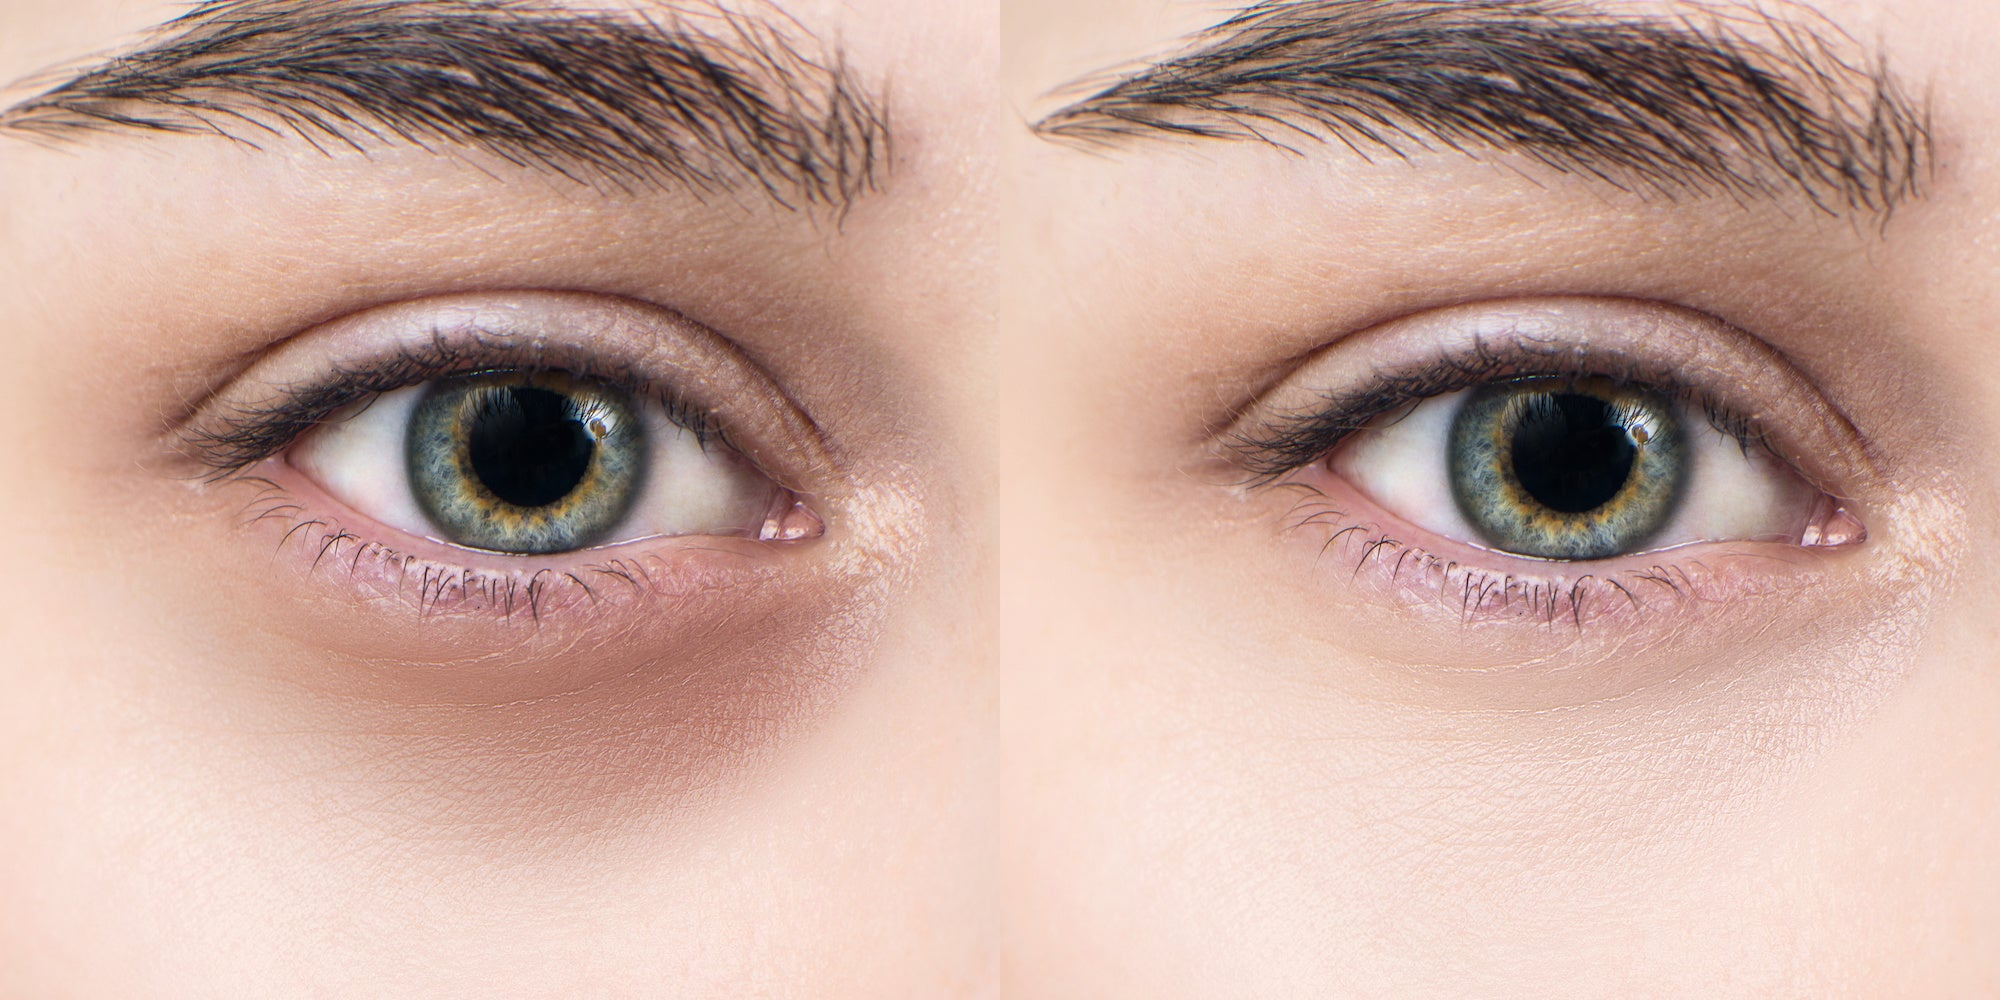 5 Reasons You Have Dark Under Eye Circles & How to Conceal Them